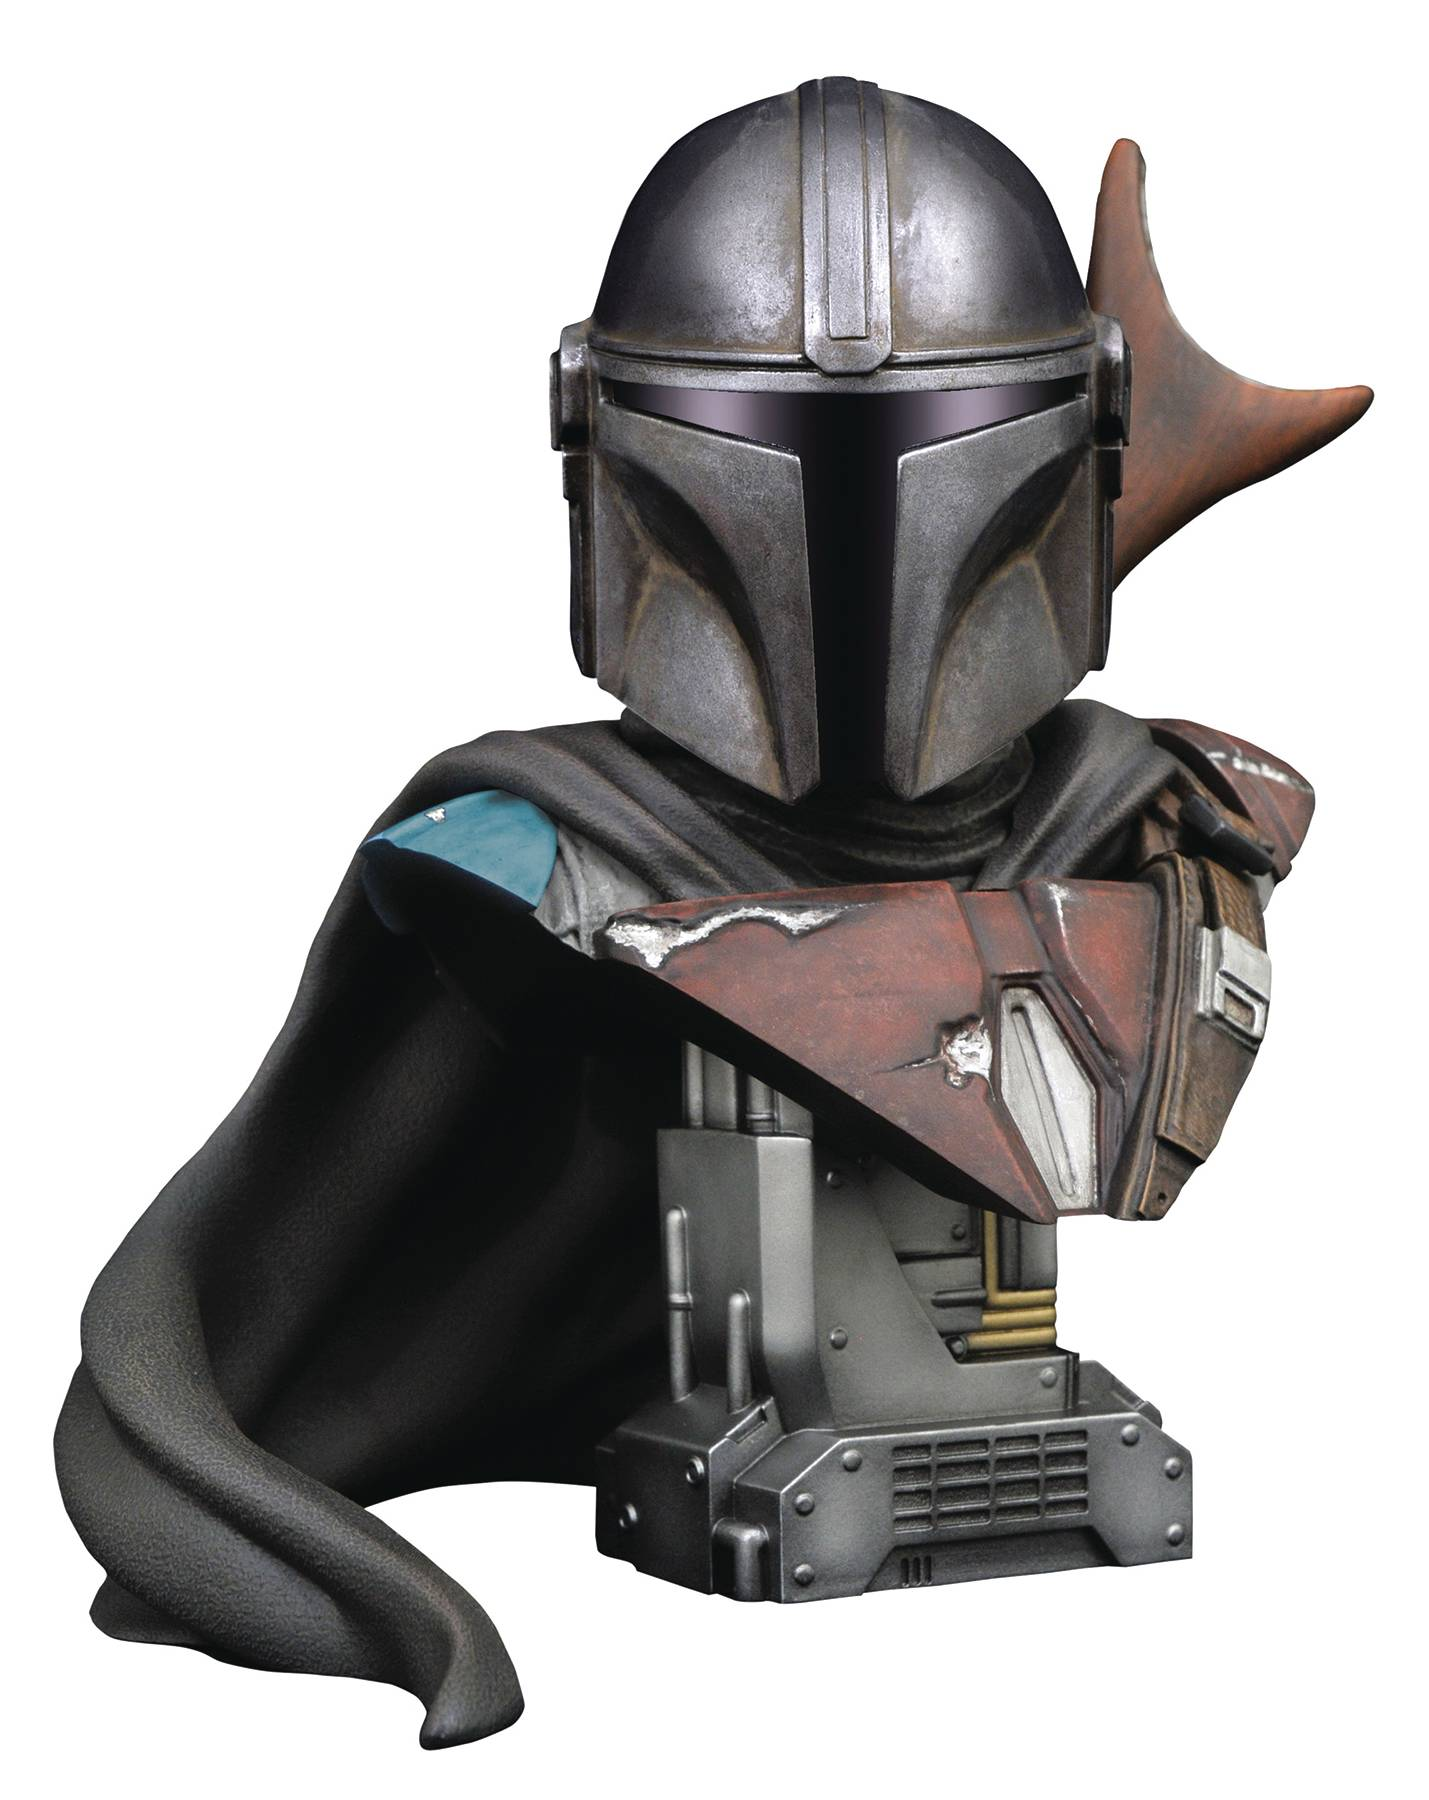 Legends in 3D - Star Wars - The Mandalorian 1/2 Scale Bust